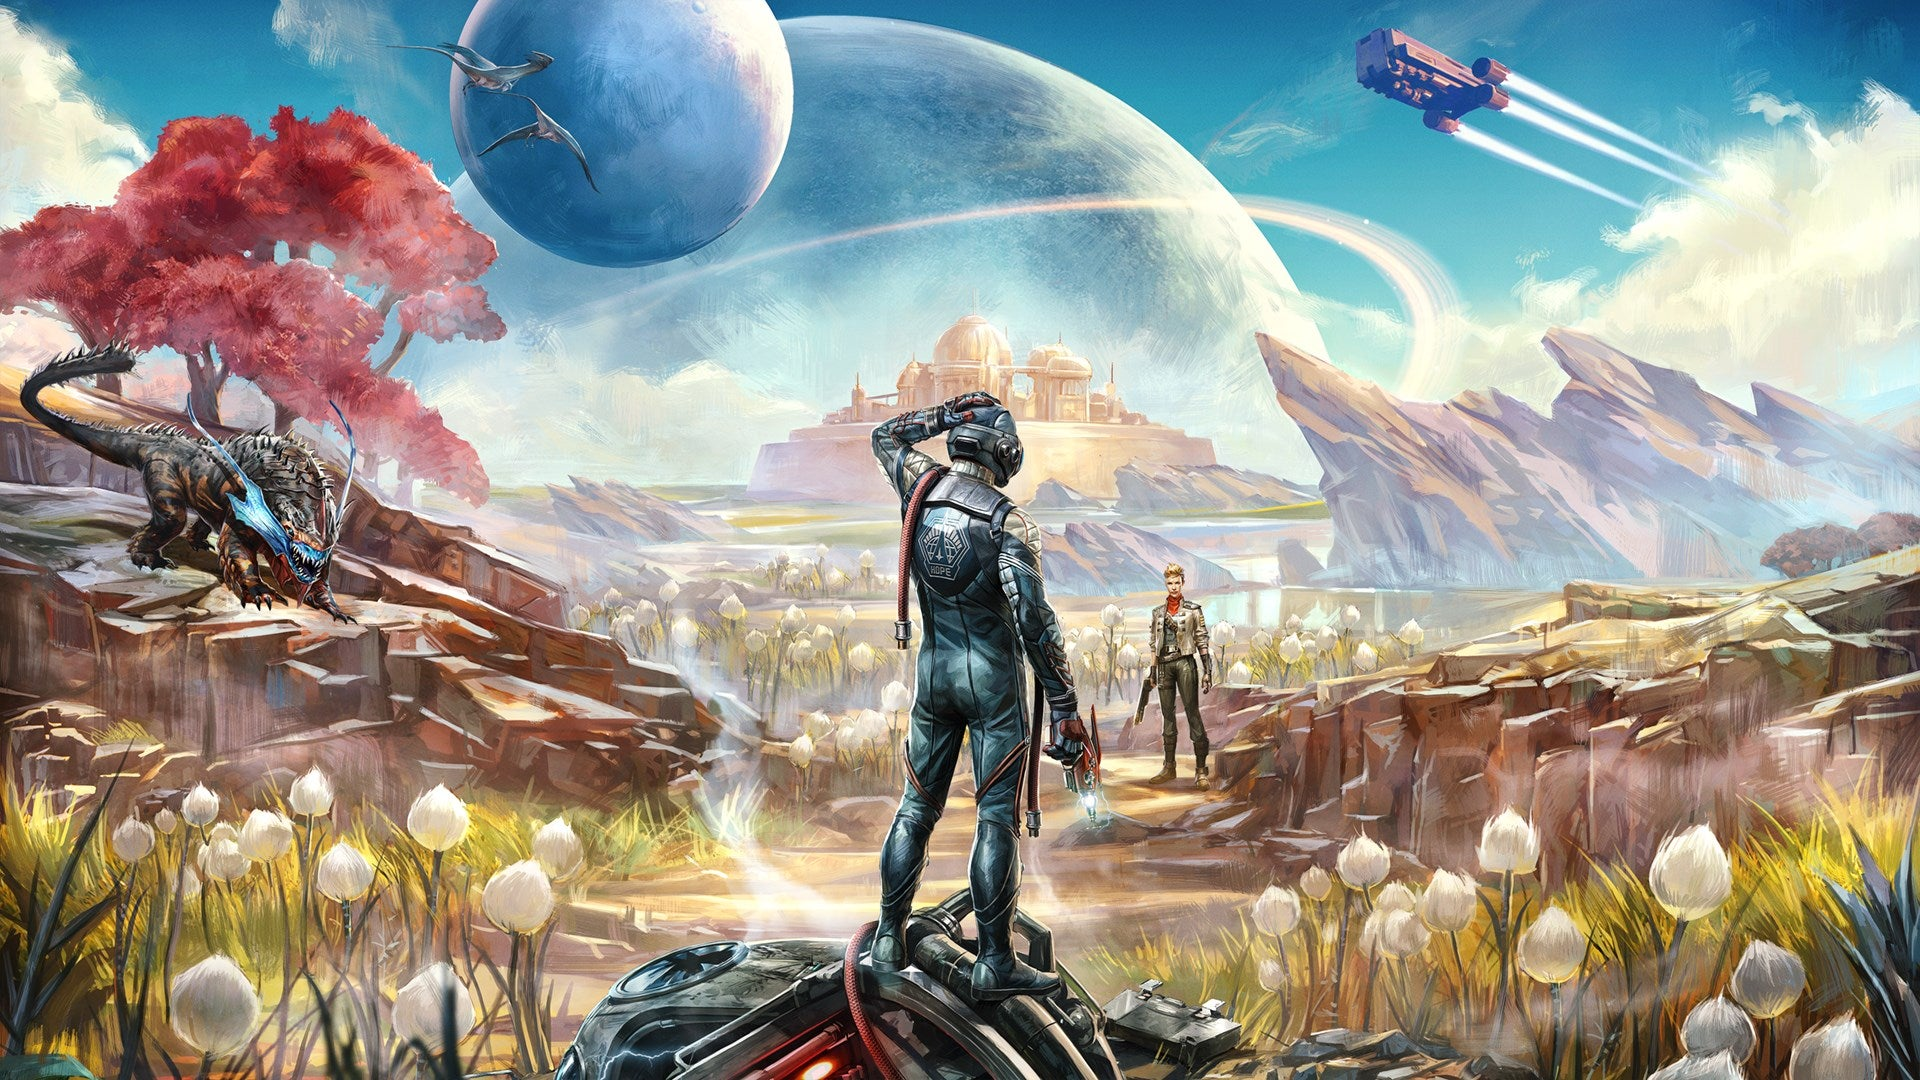 When Is The Outer Worlds Coming To Nintendo Switch